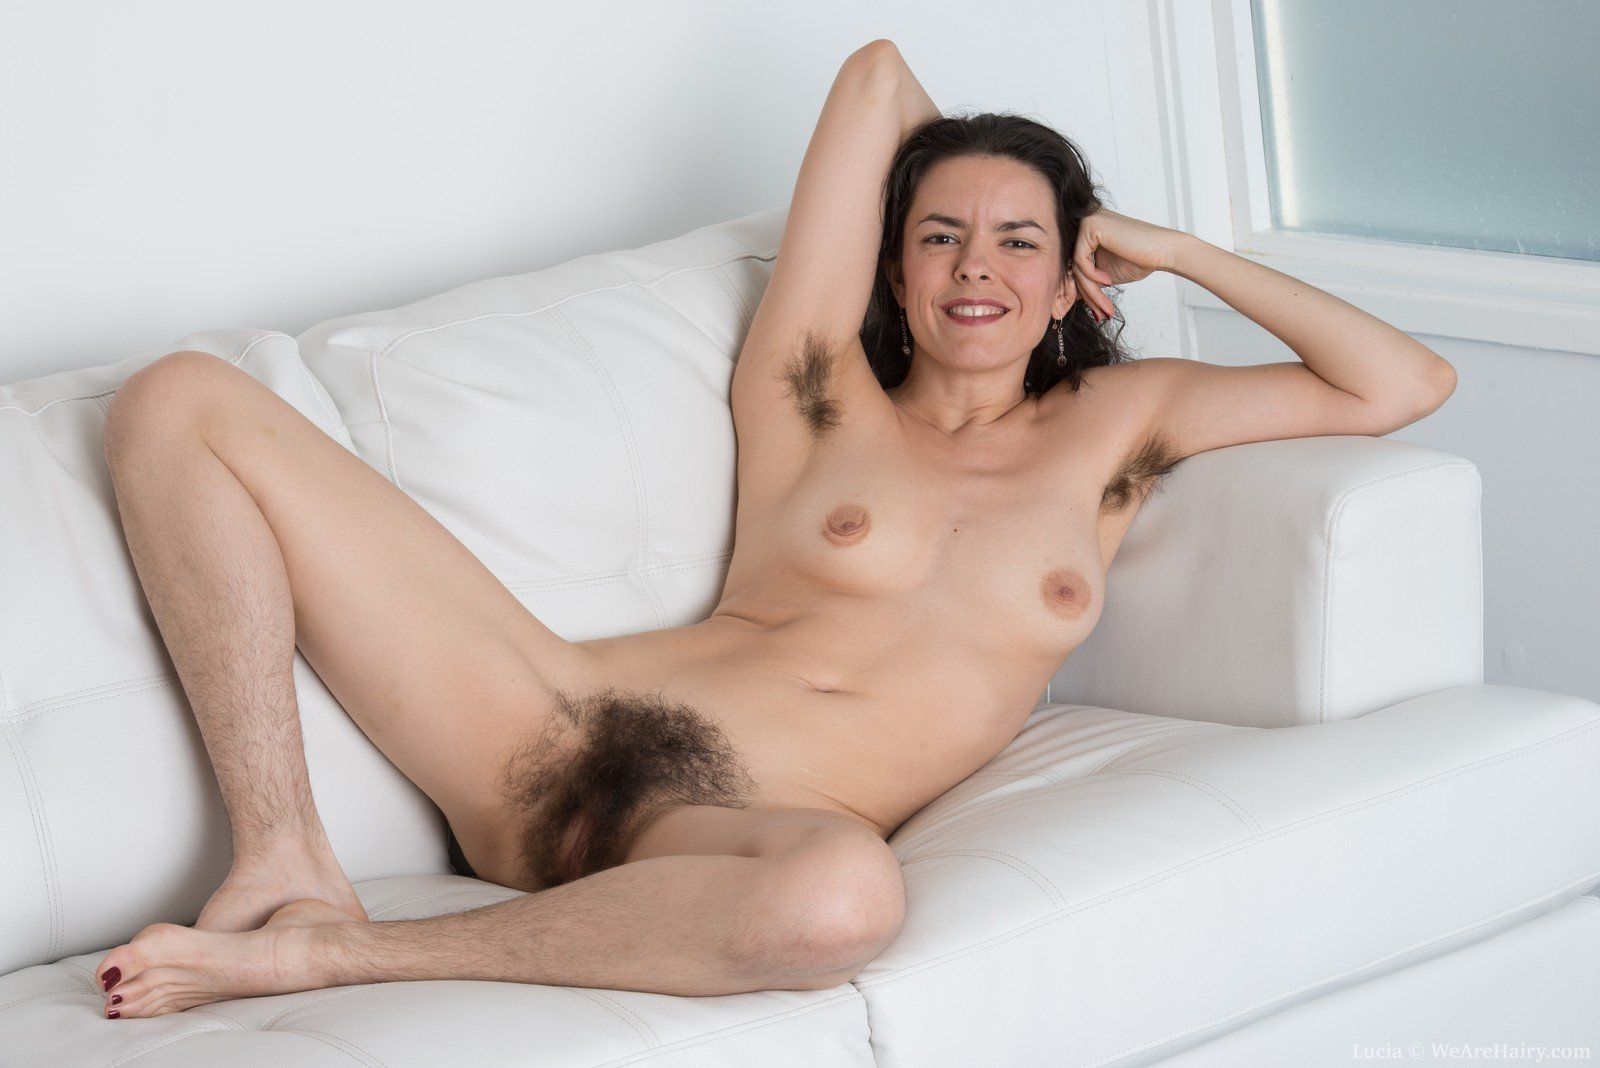 Nude Blonde With Hairy Pussy Climbs A Tree To Show Off